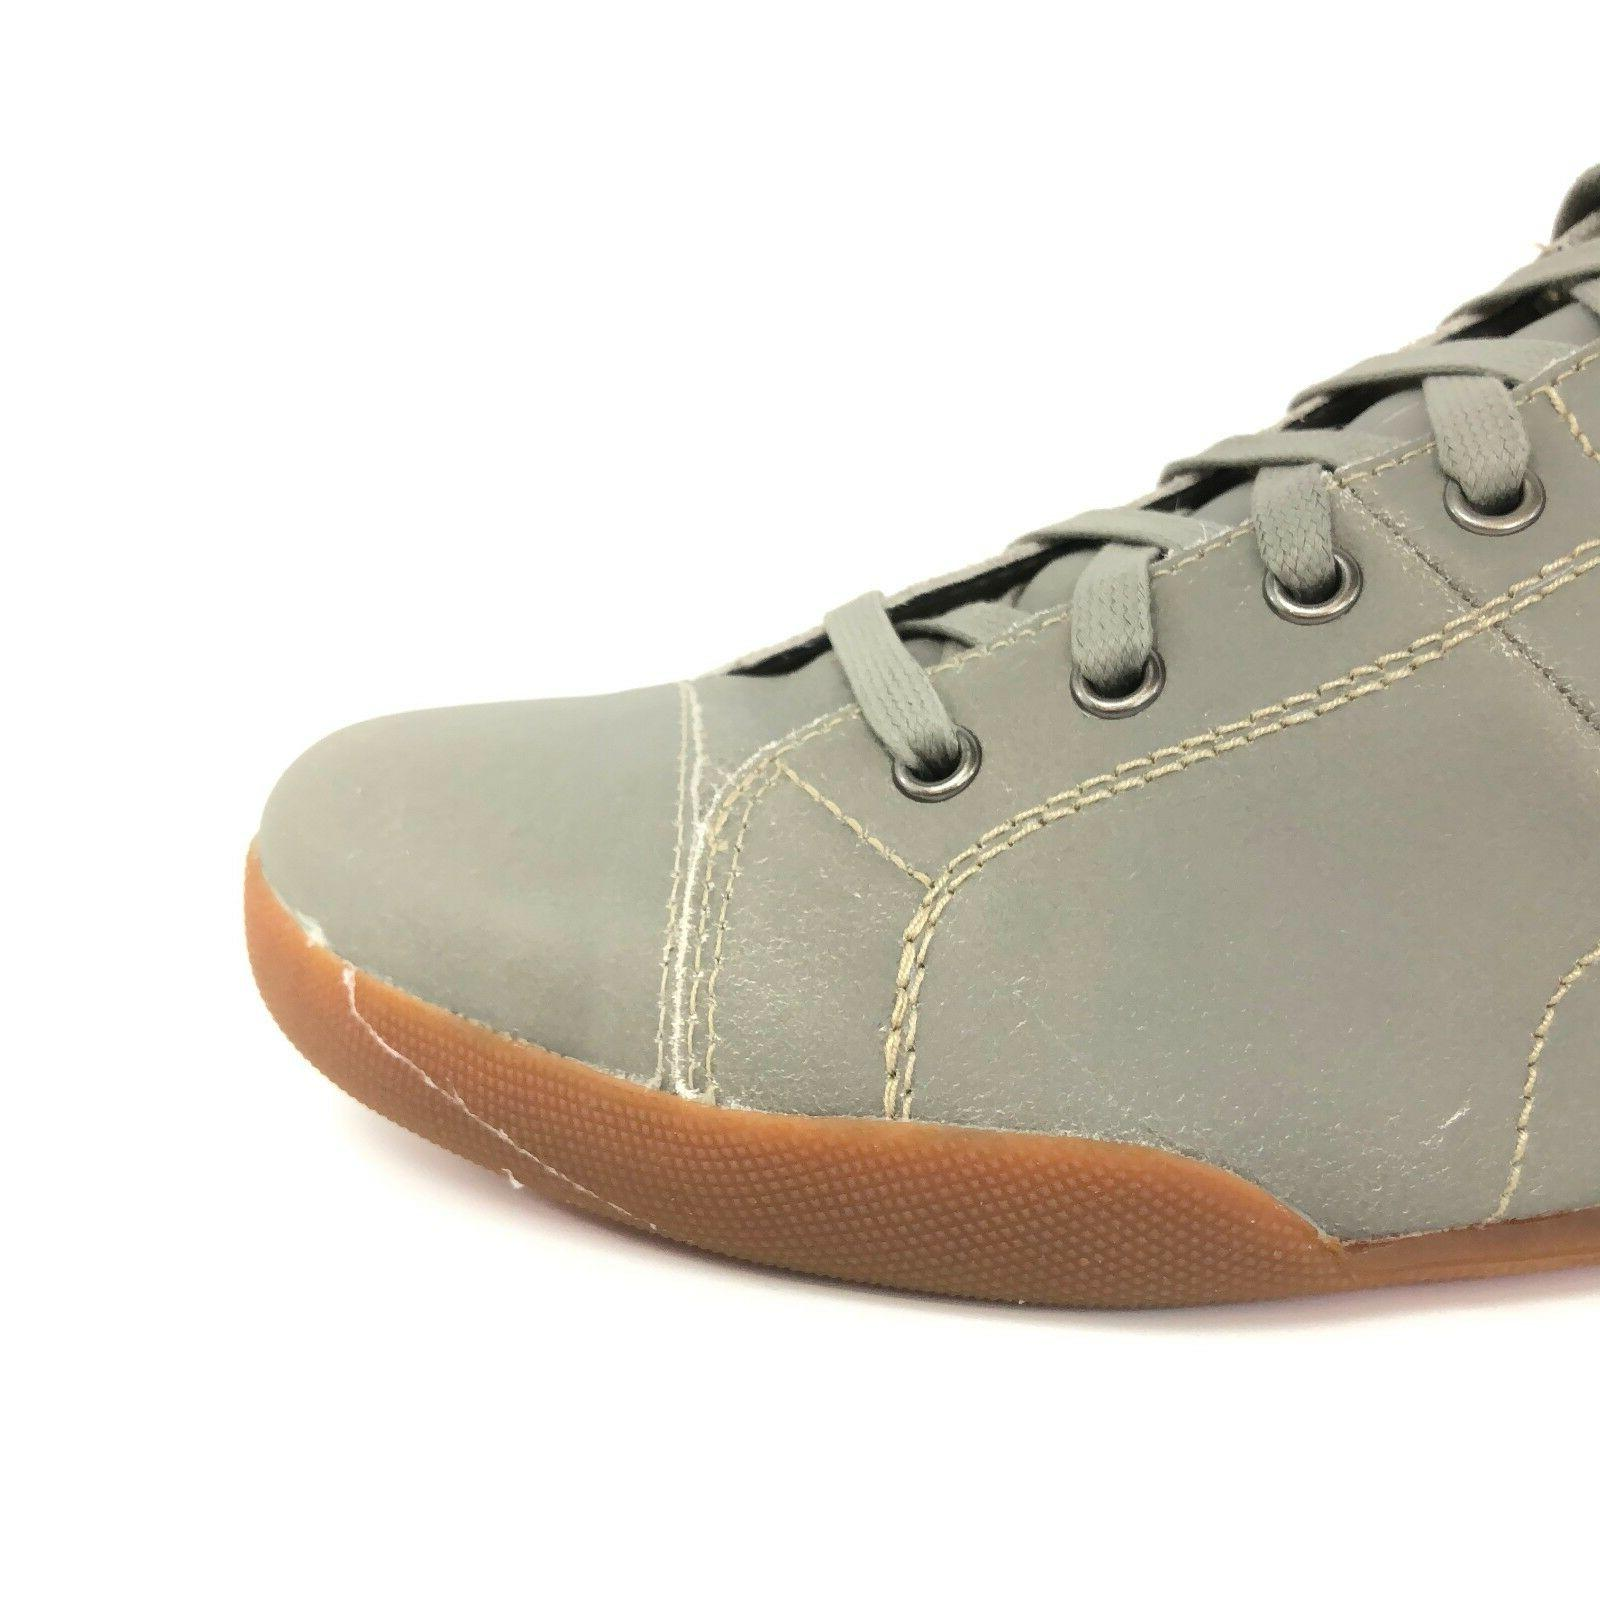 Timberland Men's Earthkeepers Cap Oxford Shoes 5357A